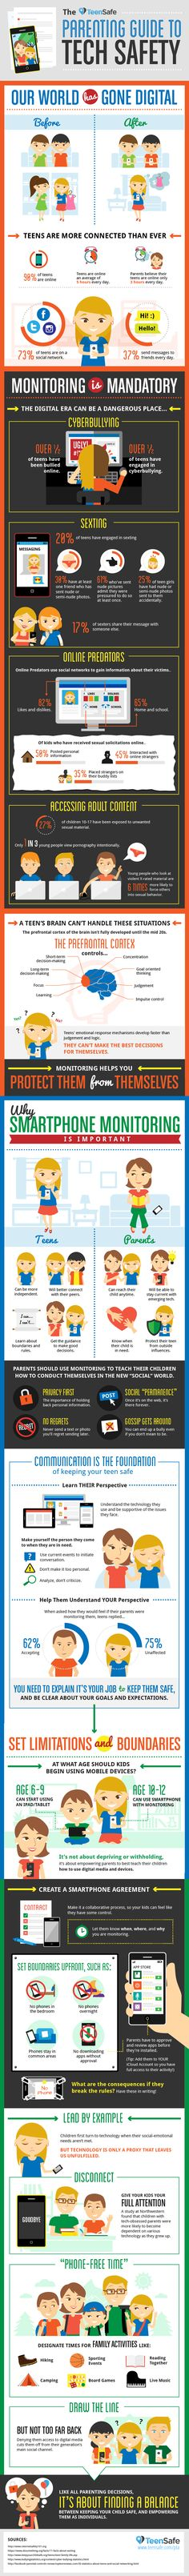 Digital Literacy - A Parenting Guide to Tech Safety